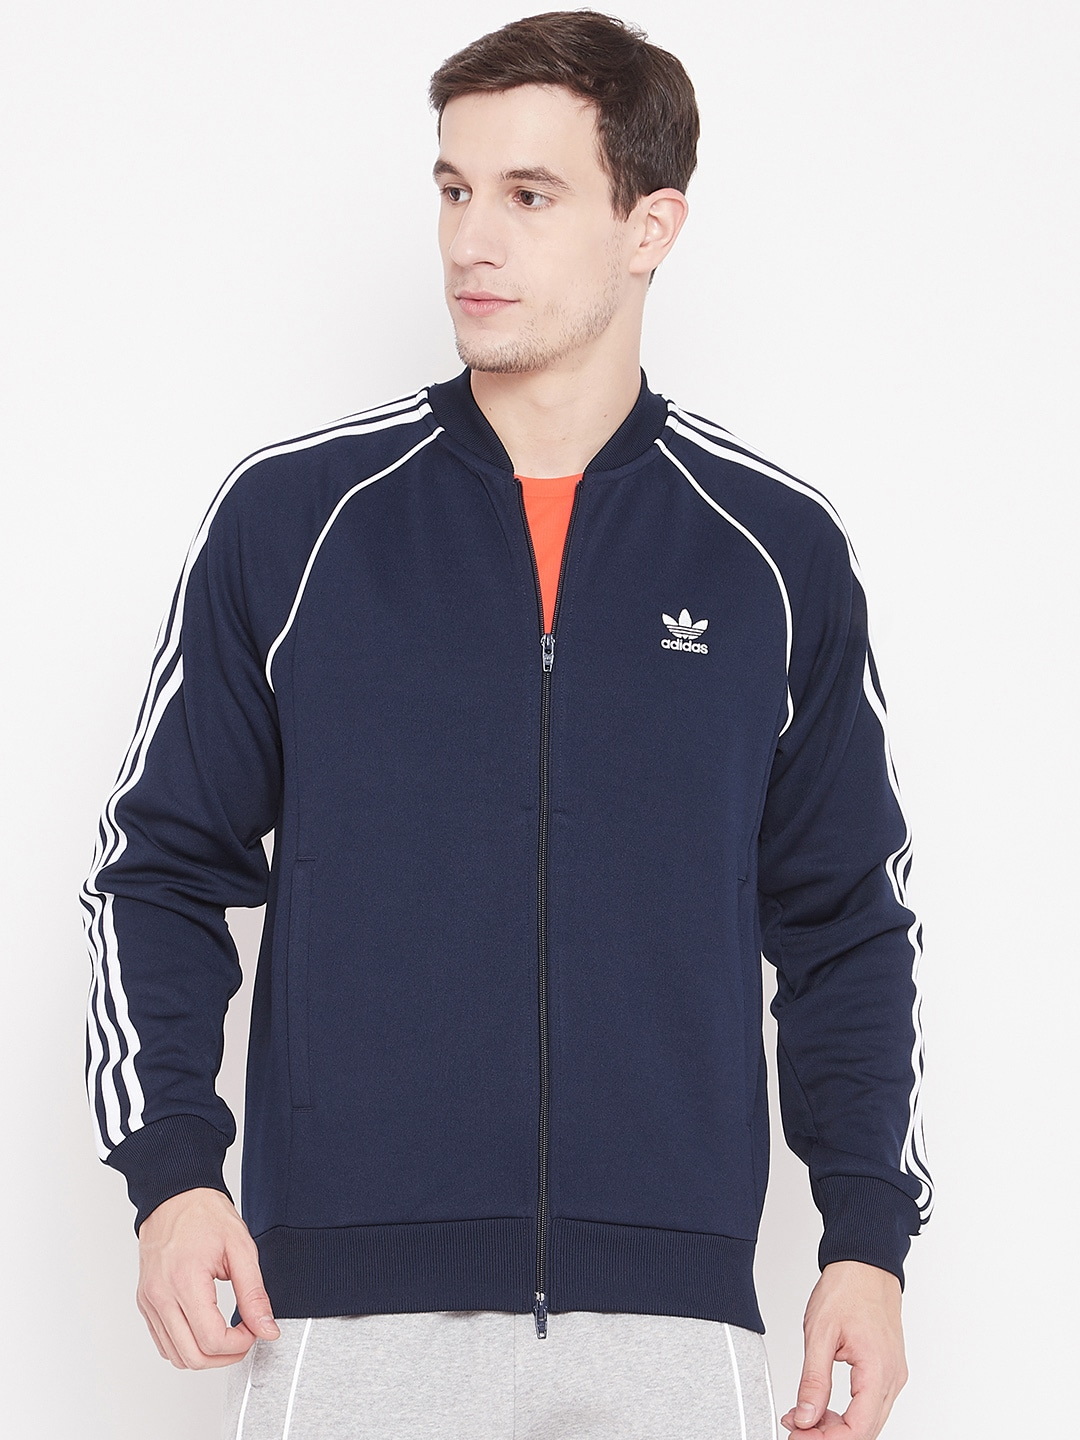 adidas - Exclusive adidas Online Store in India at Myntra fc89d5f3bd